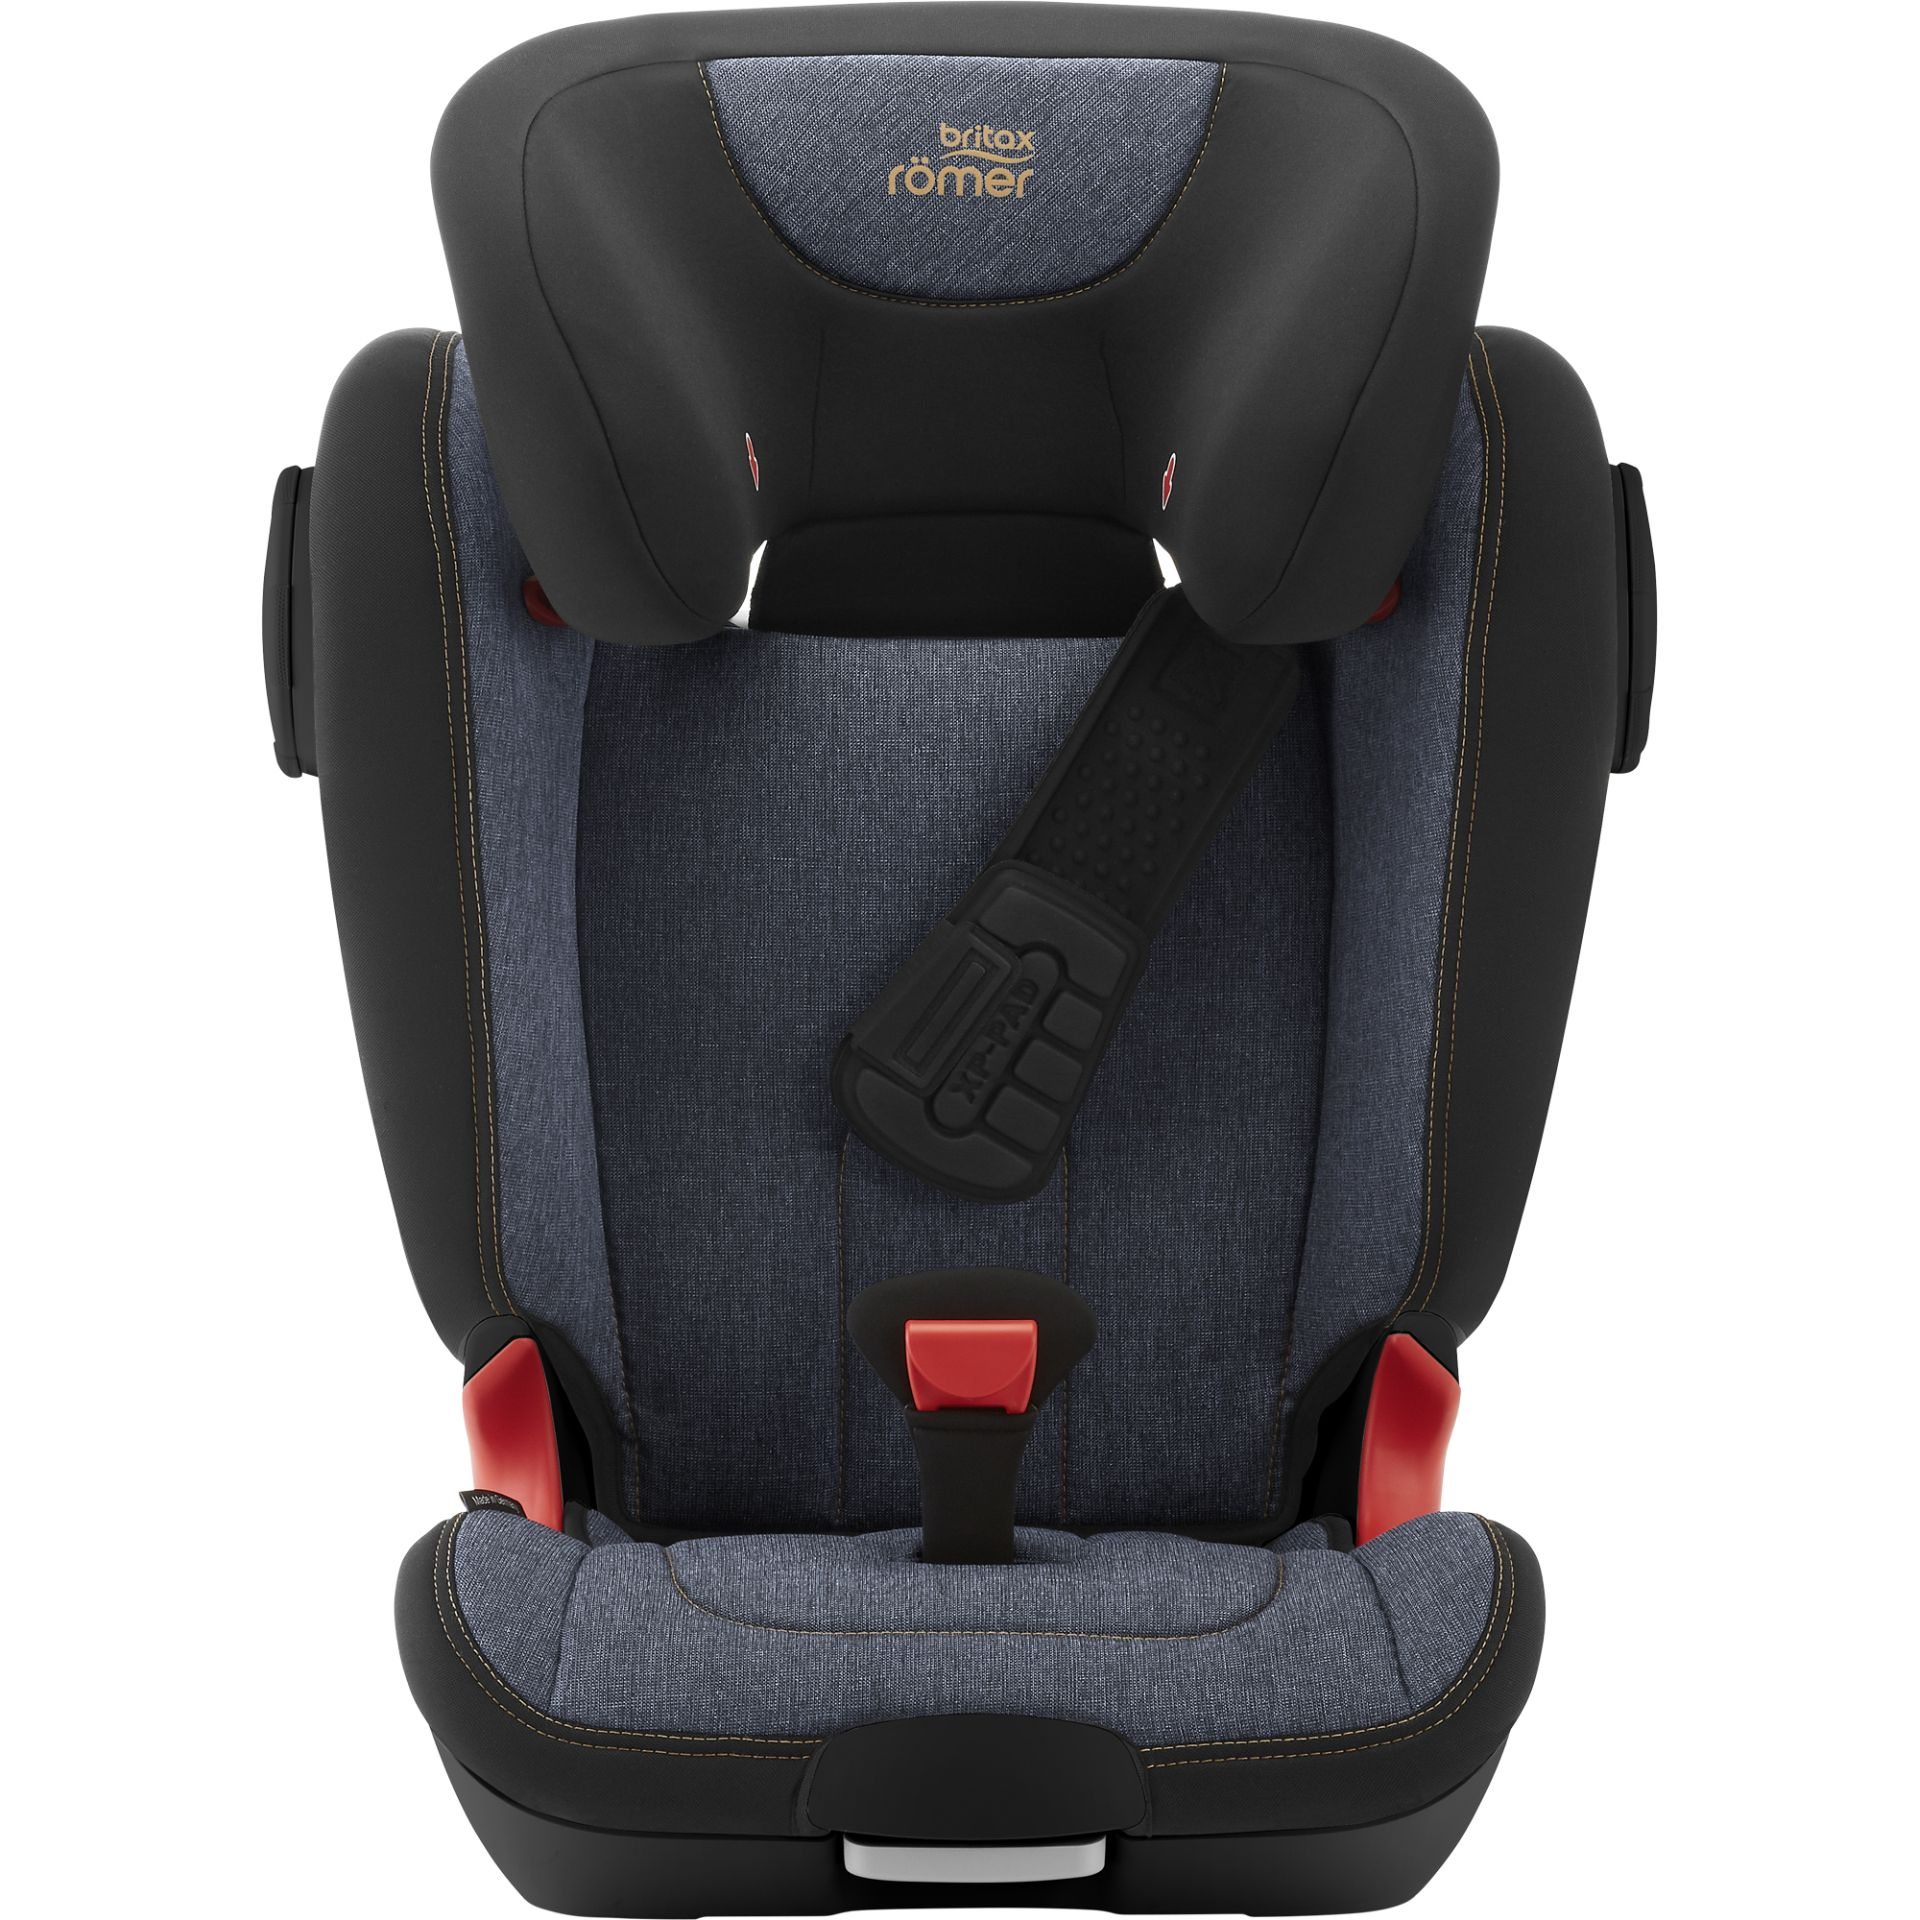 britax r mer child car seat kidfix ii xp sict black series 2018 blue marble buy at kidsroom. Black Bedroom Furniture Sets. Home Design Ideas